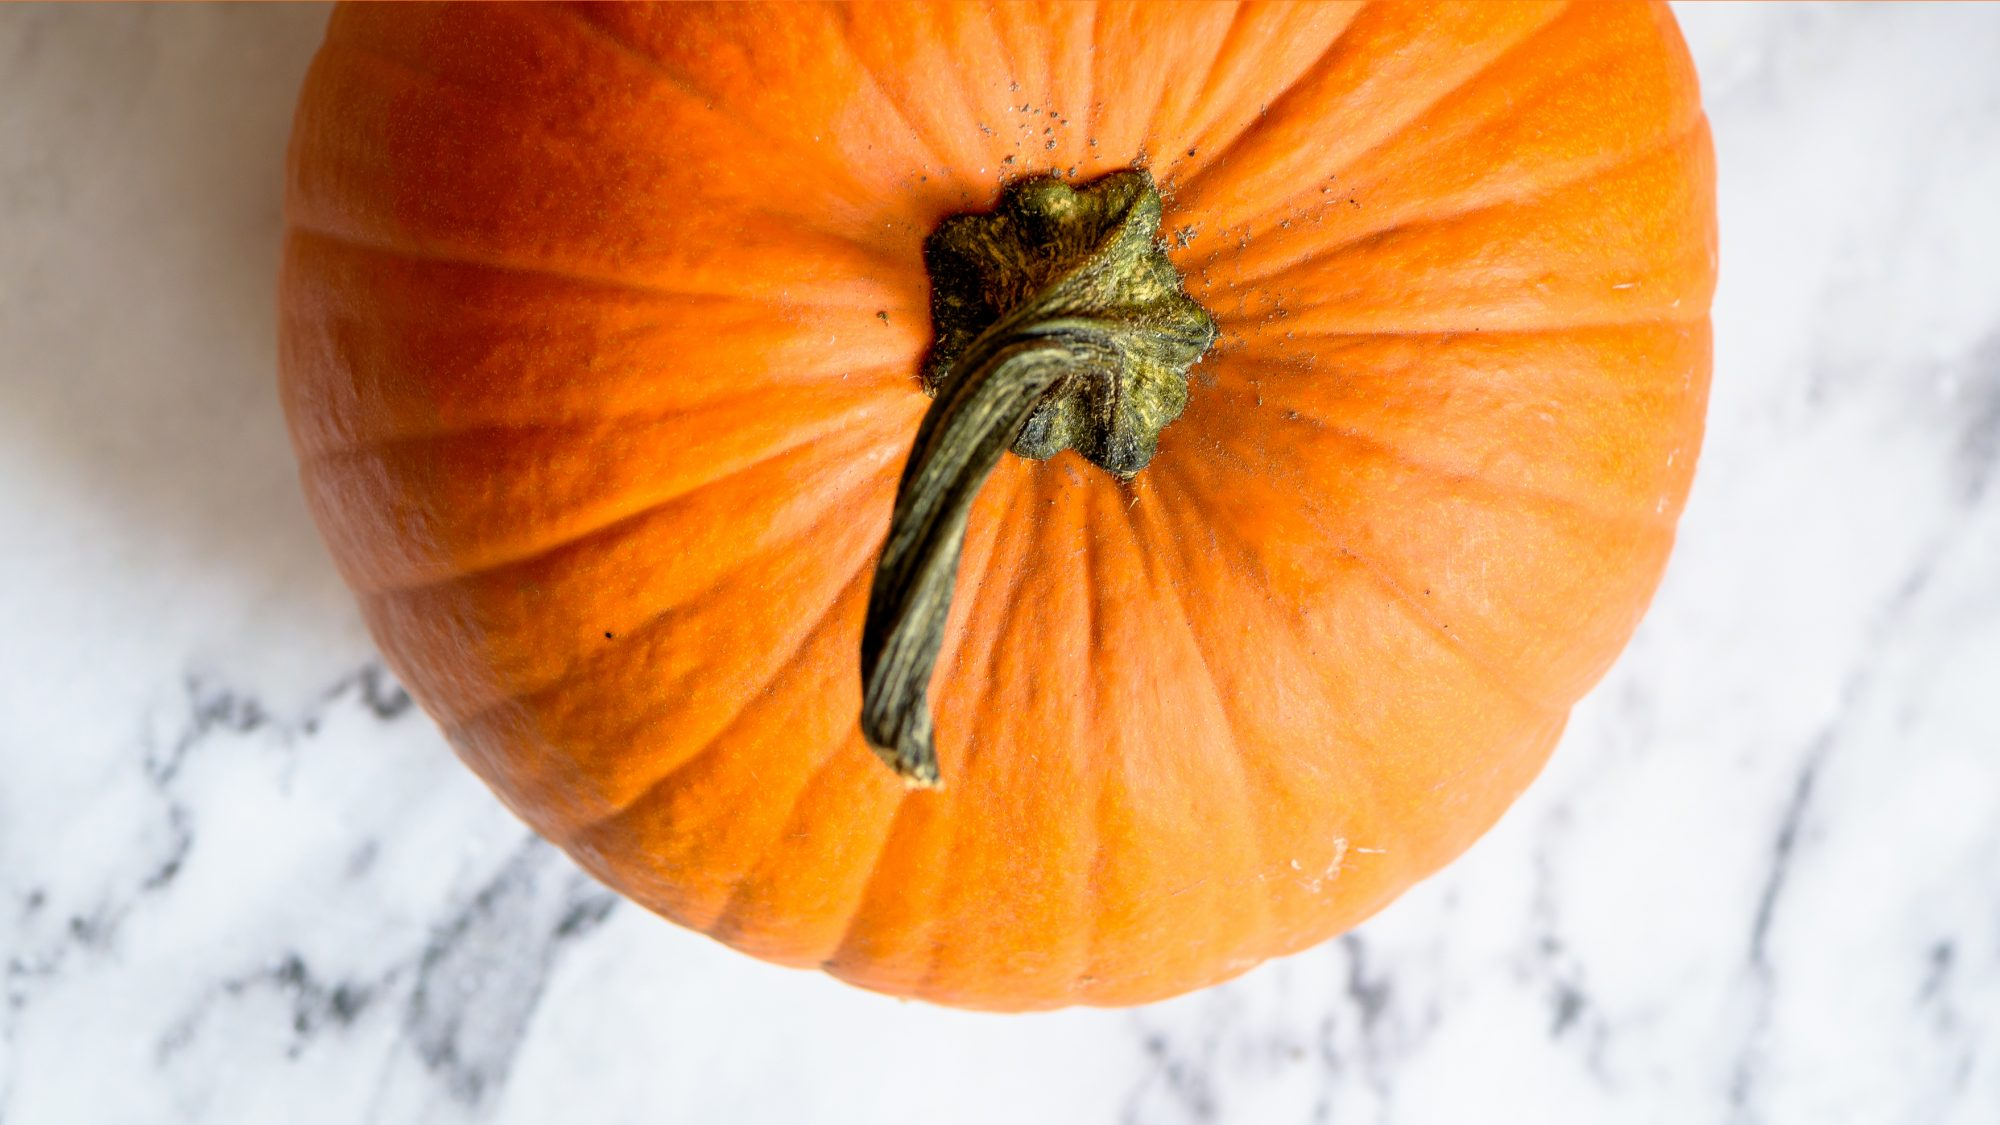 Pumpkin facts and trivia - large pumpkin